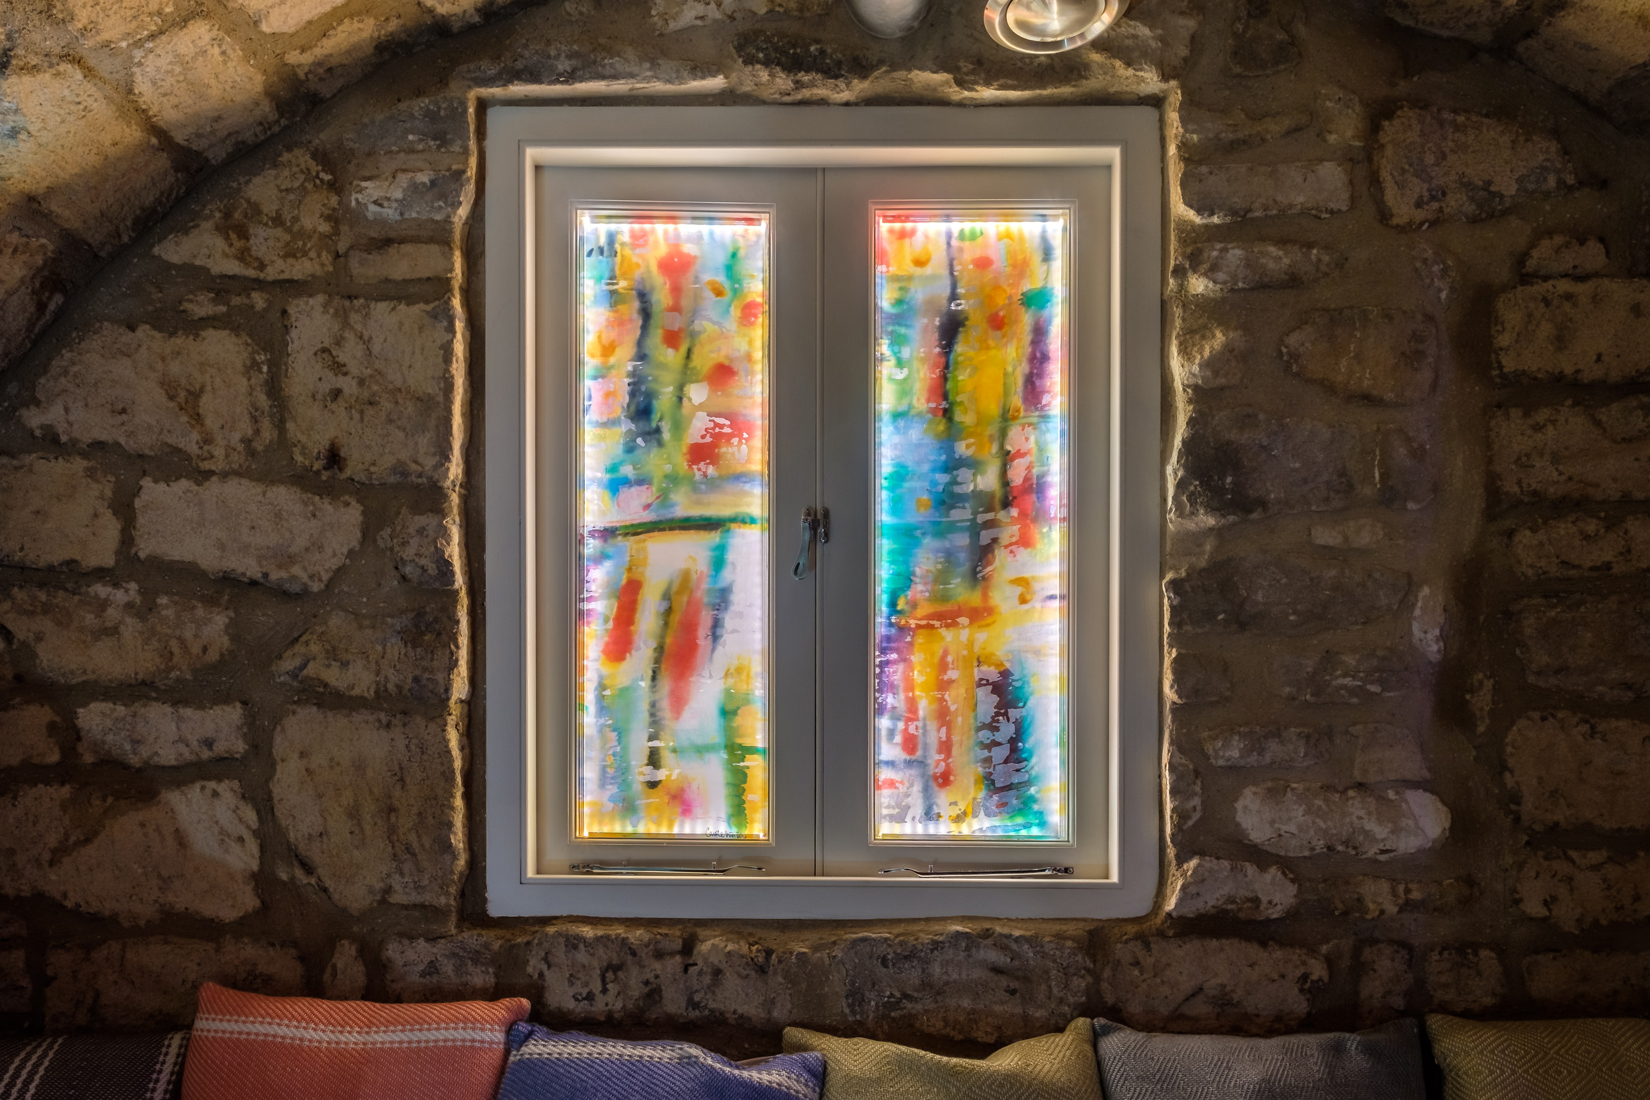 carole waller glass artwork windows at number 15 great pulteney street hotel sauna